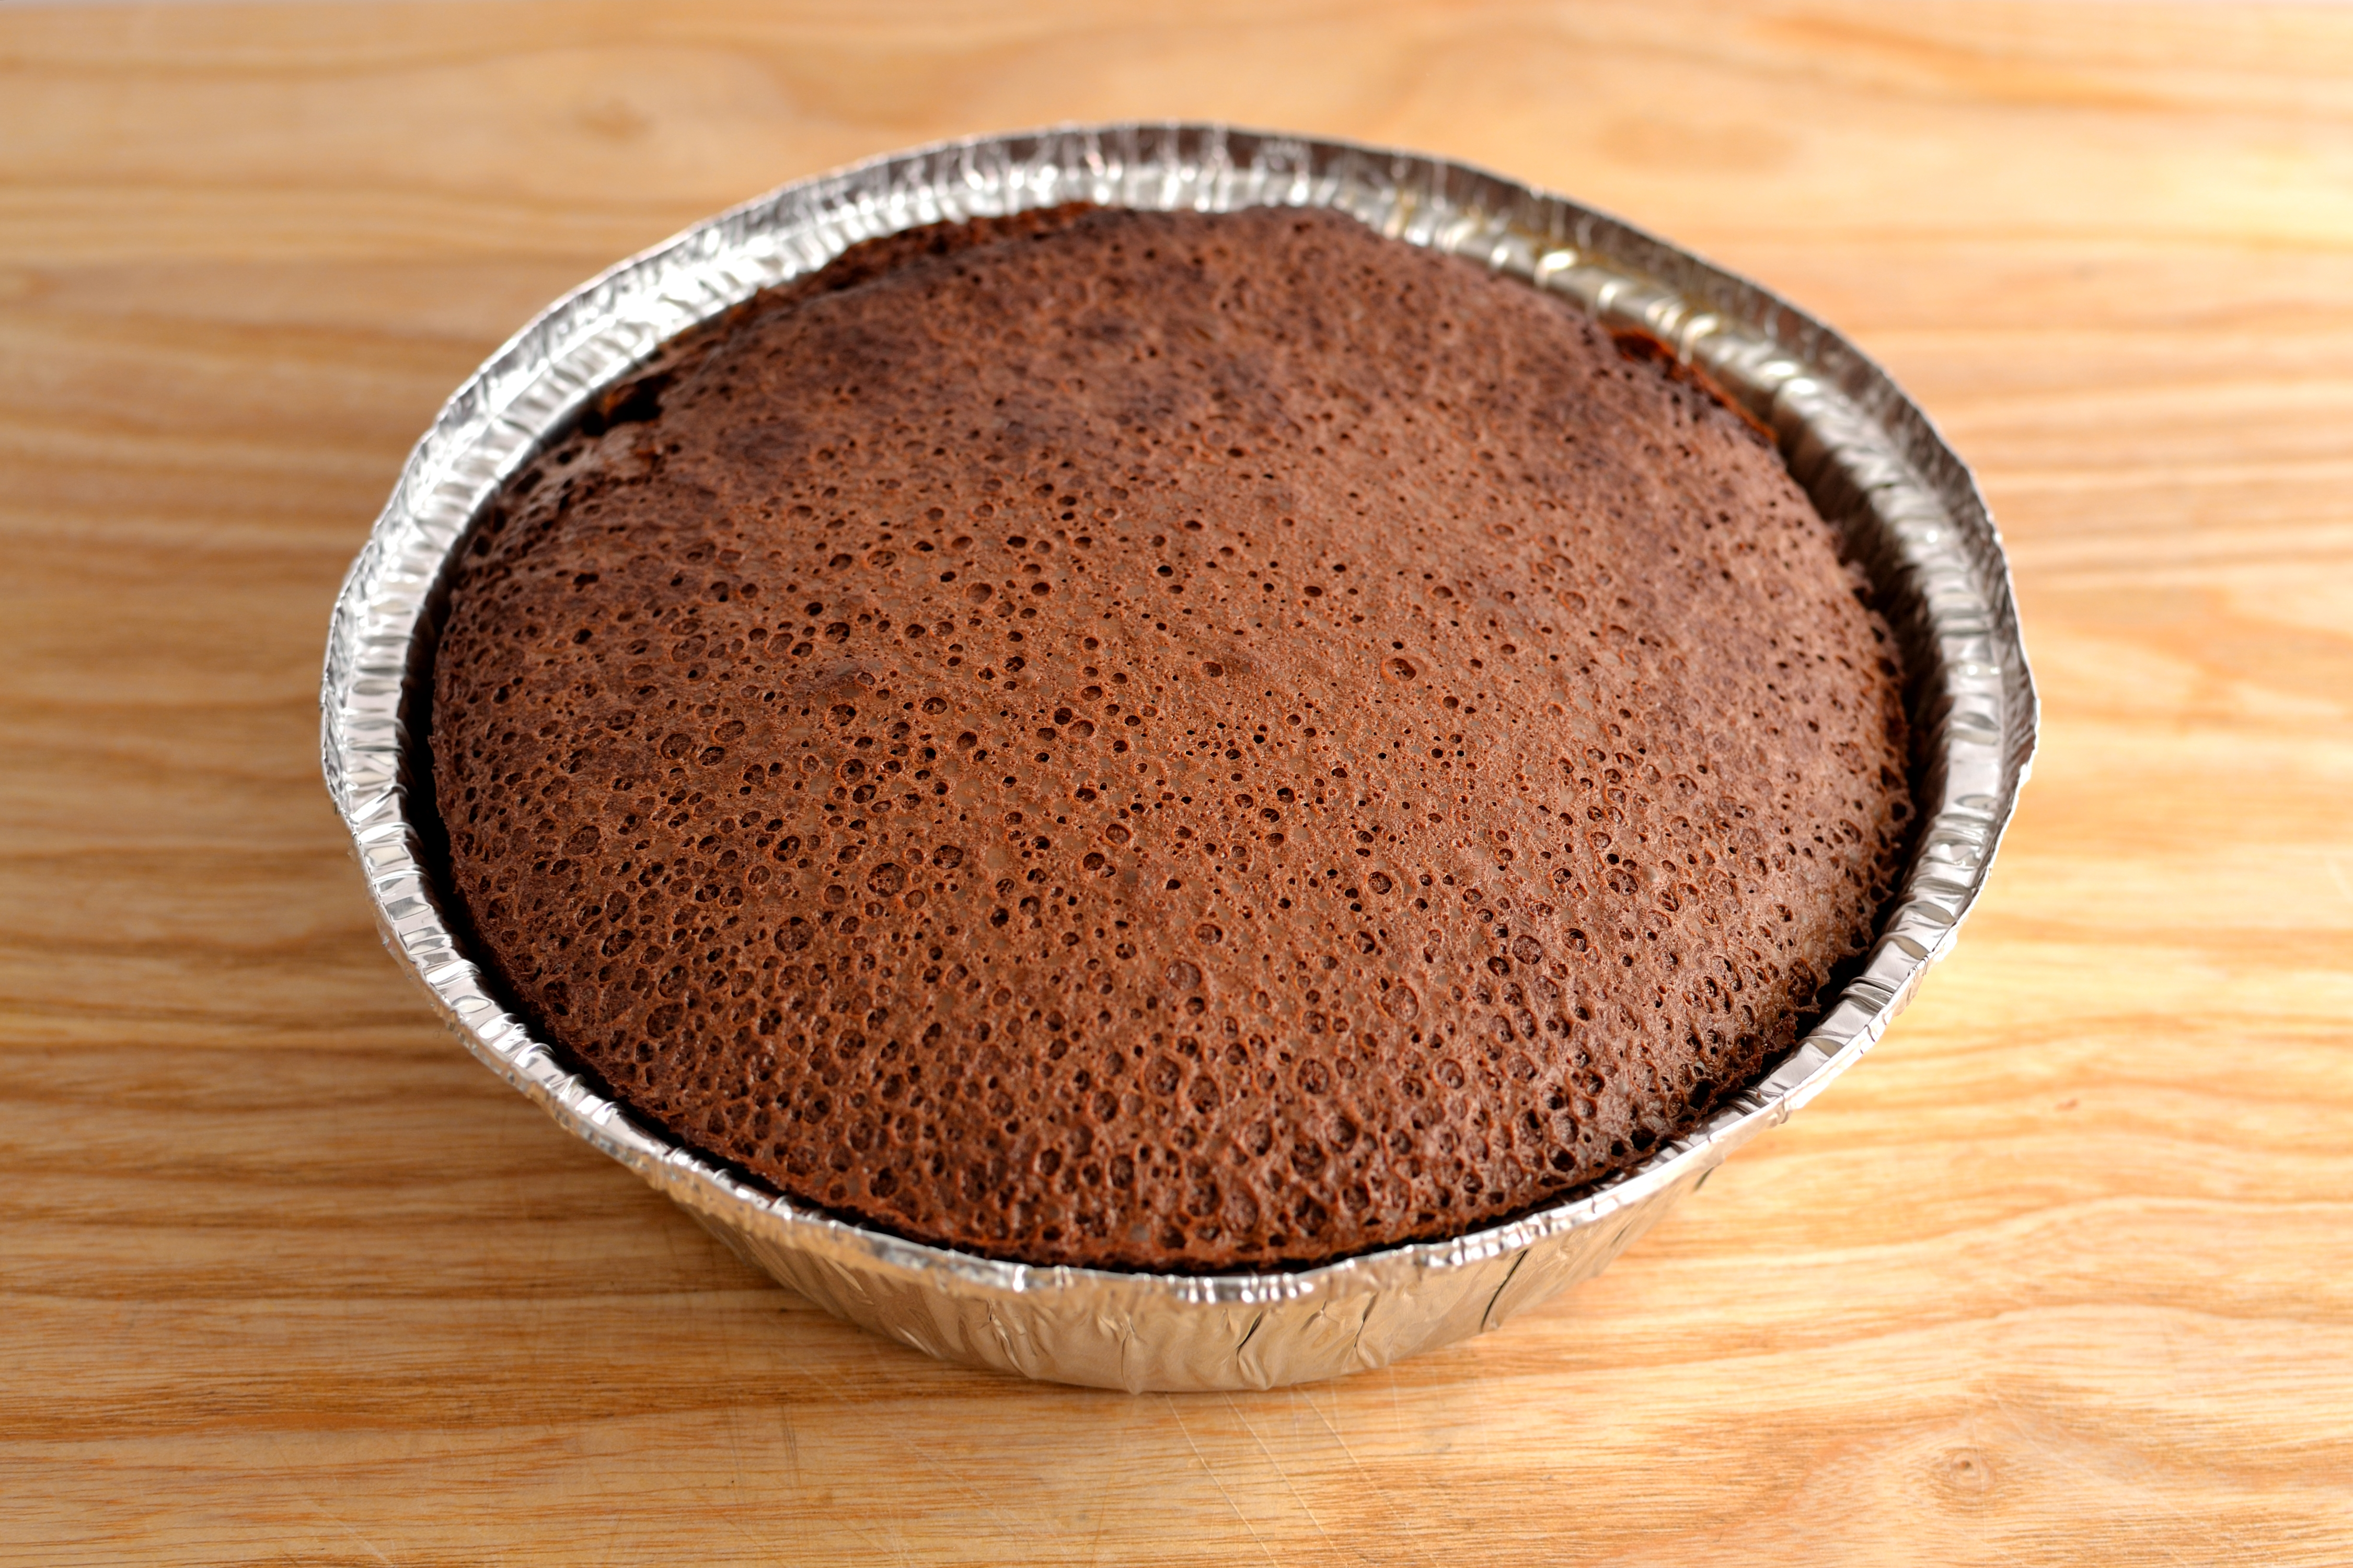 How To Make A Chocolate Souffle: 6 Steps (with Pictures